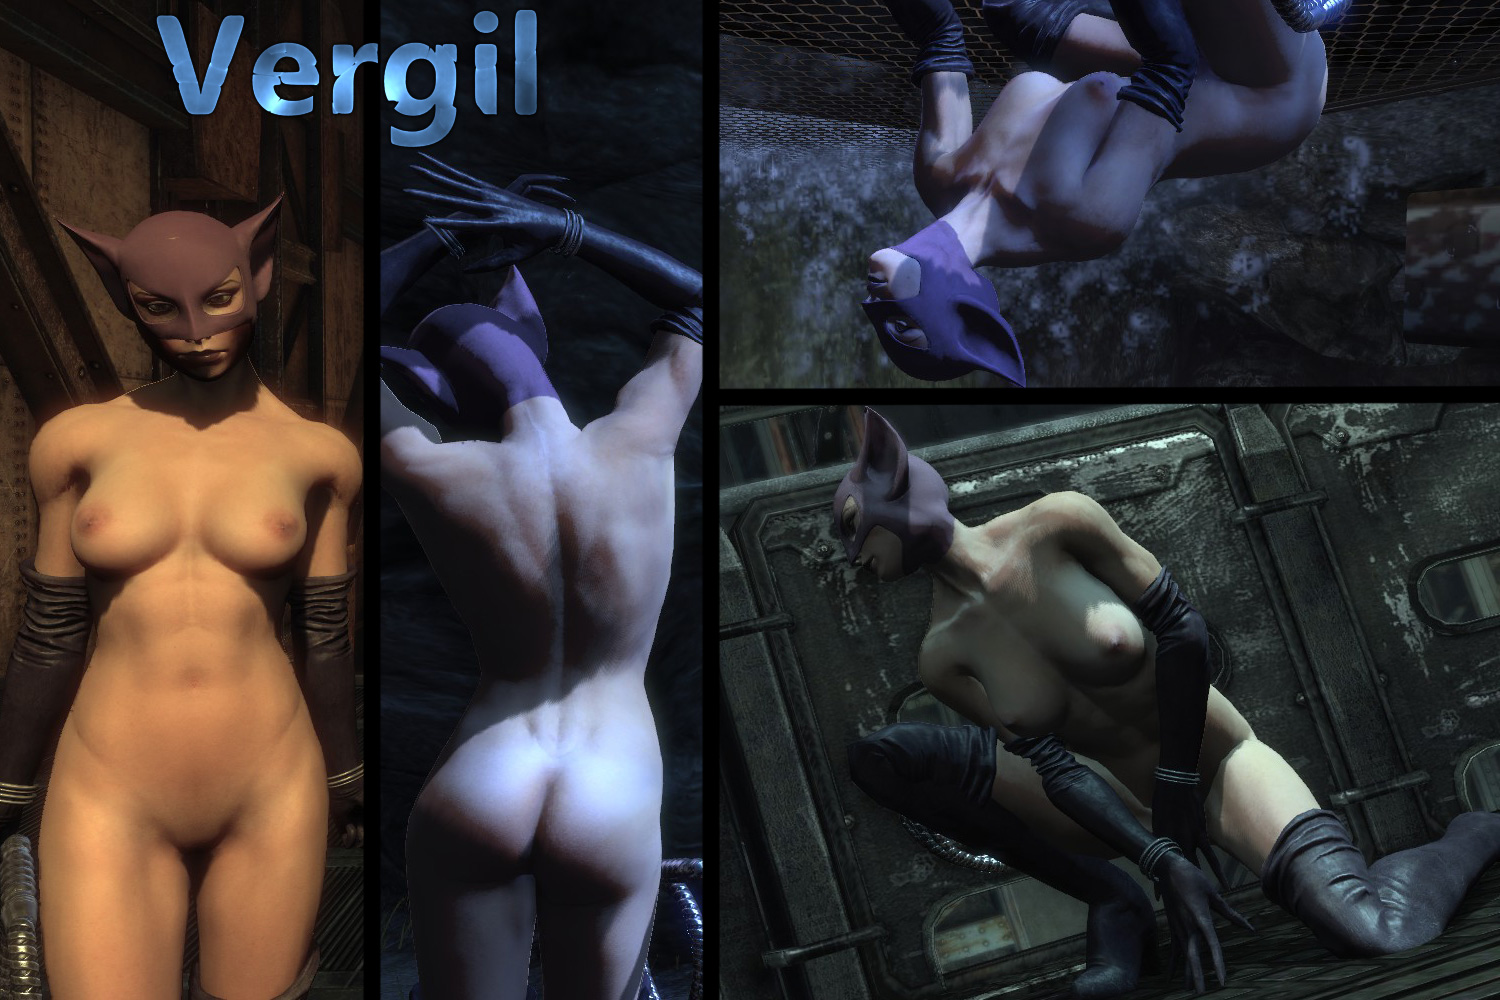 Knight nud erotic scene